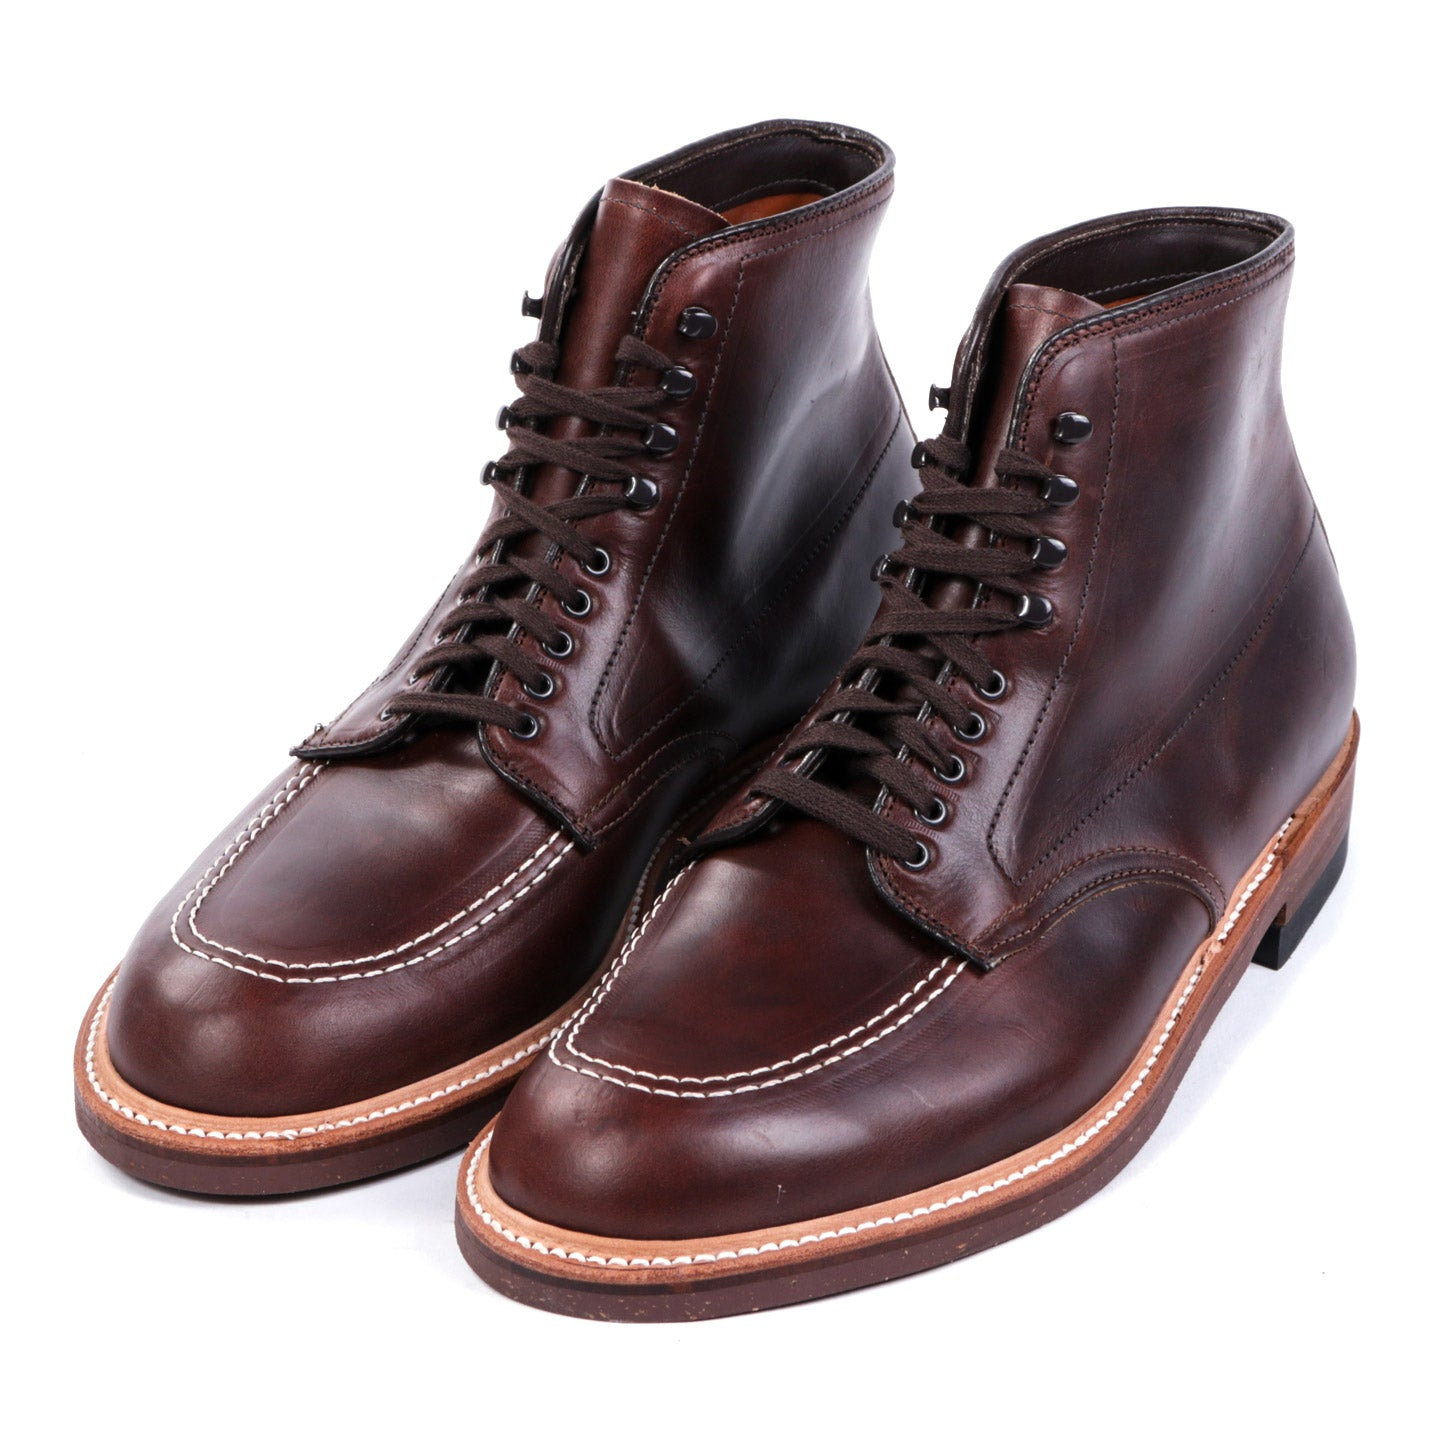 ALDEN 403 WORK BOOT BROWN ANILINE PULL-UP